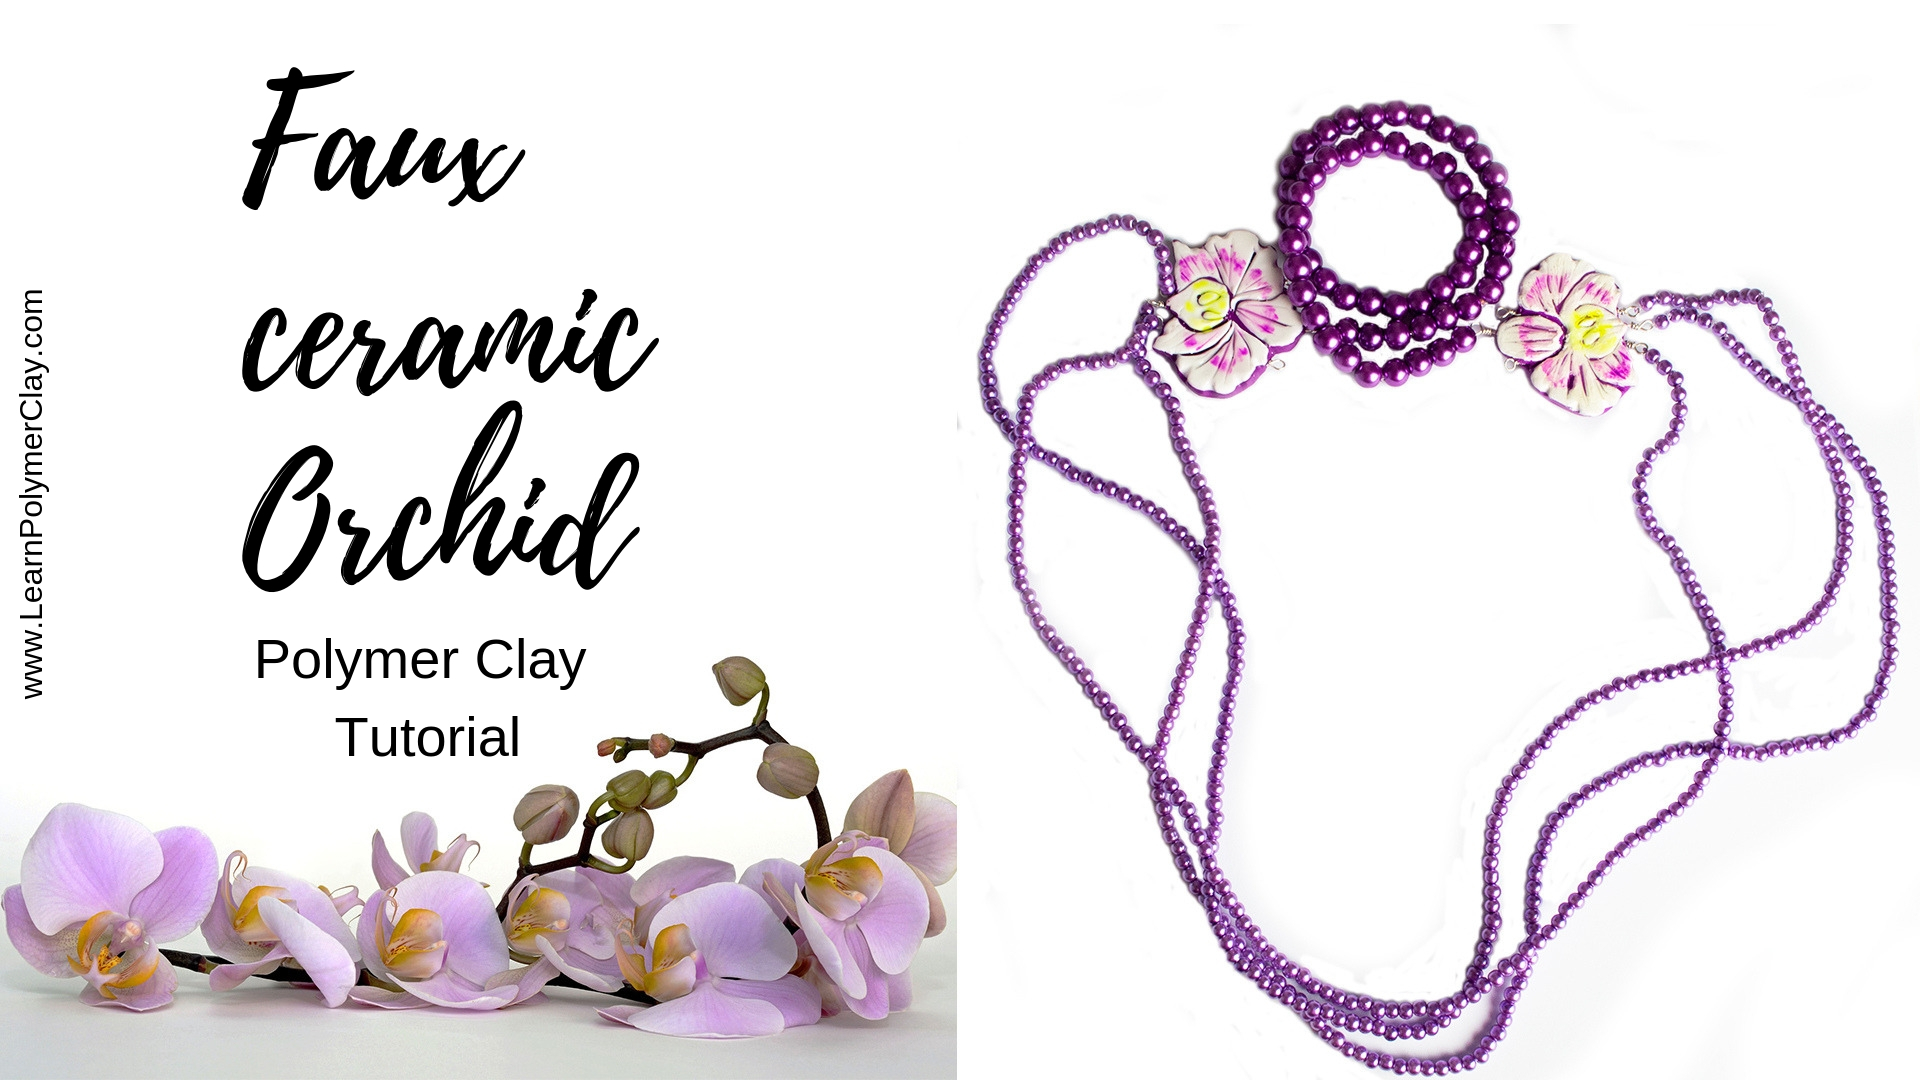 Orchid polymer clay tutorial or using images to make working with polymer clay easier